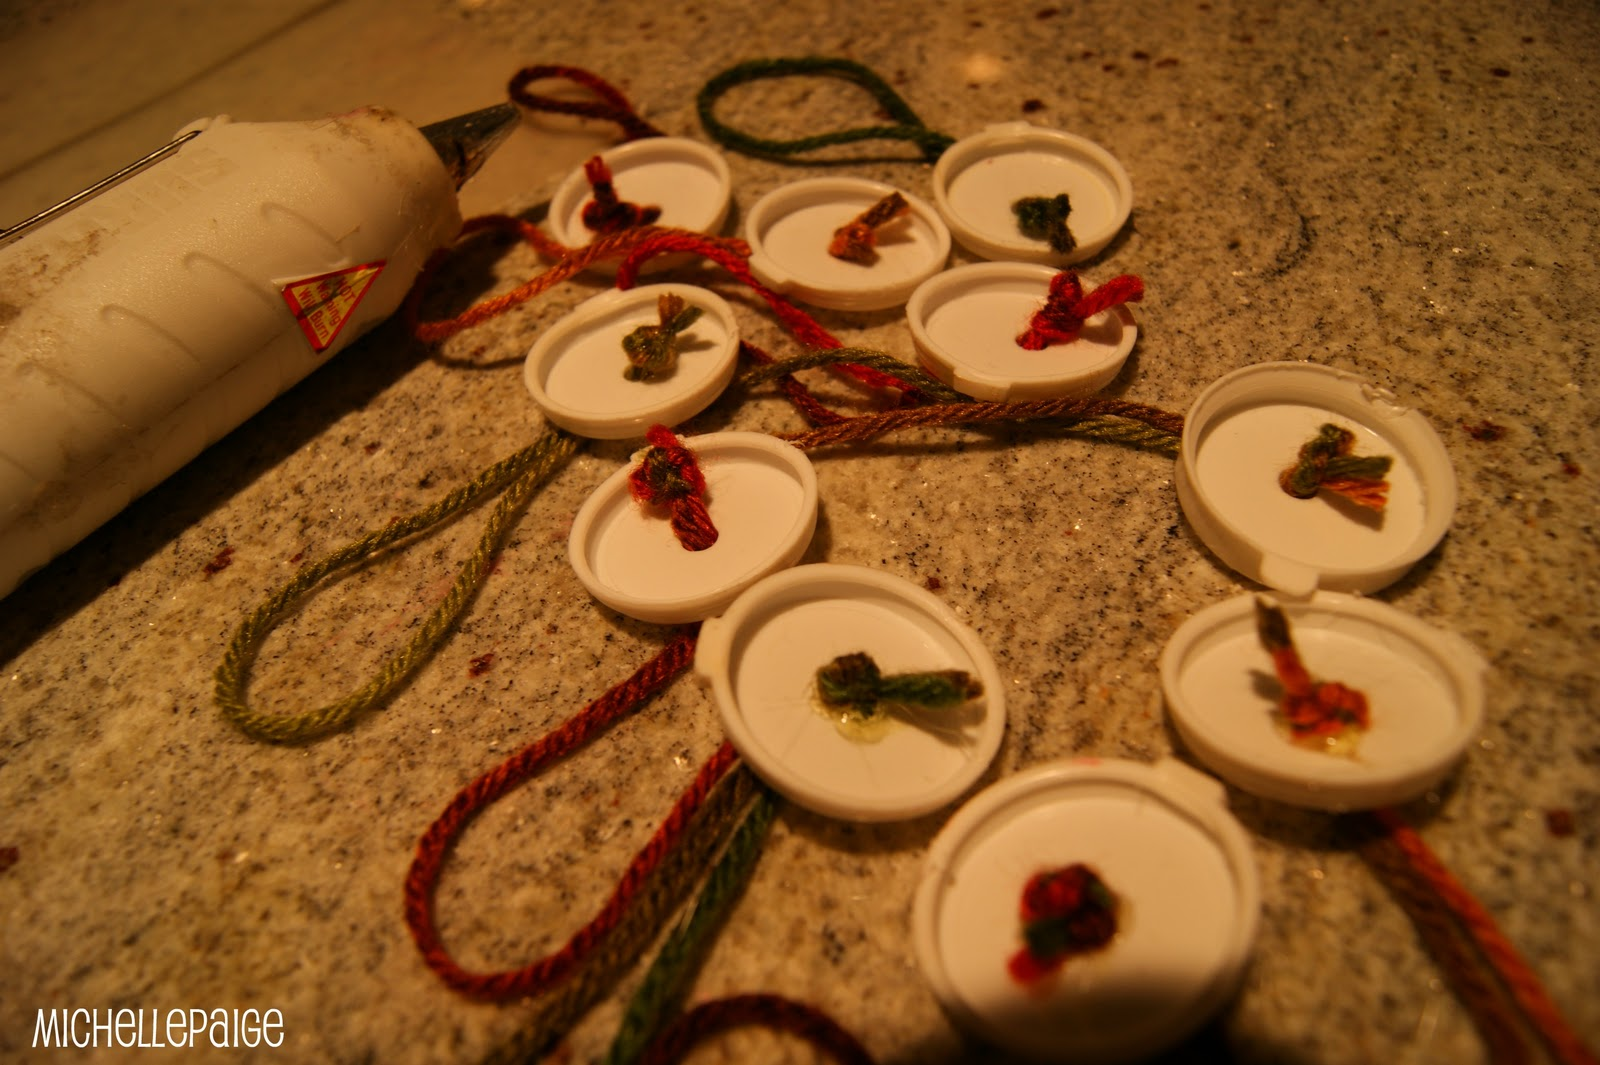 michelle paige blogs sunday craft for the book of ruth